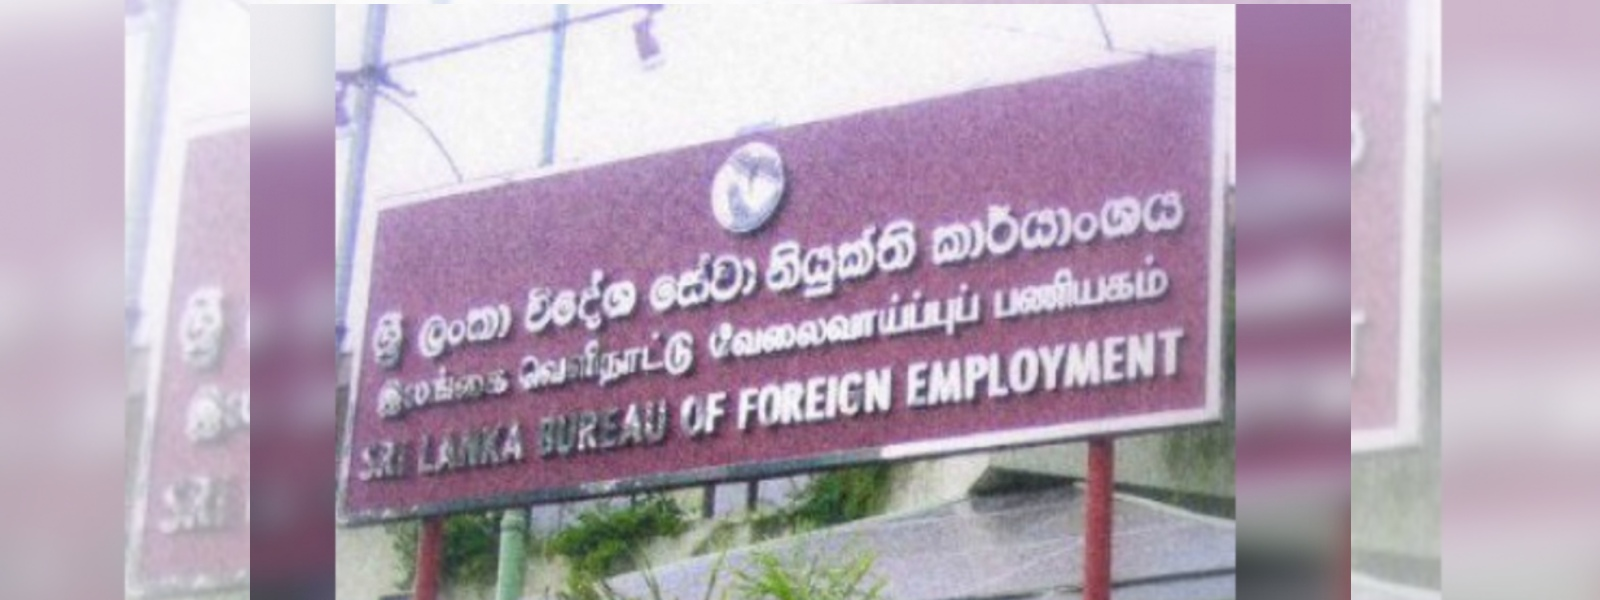 Foreign Employment Bureau to conduct a survey on SL migrant workers returned due to COVID-19